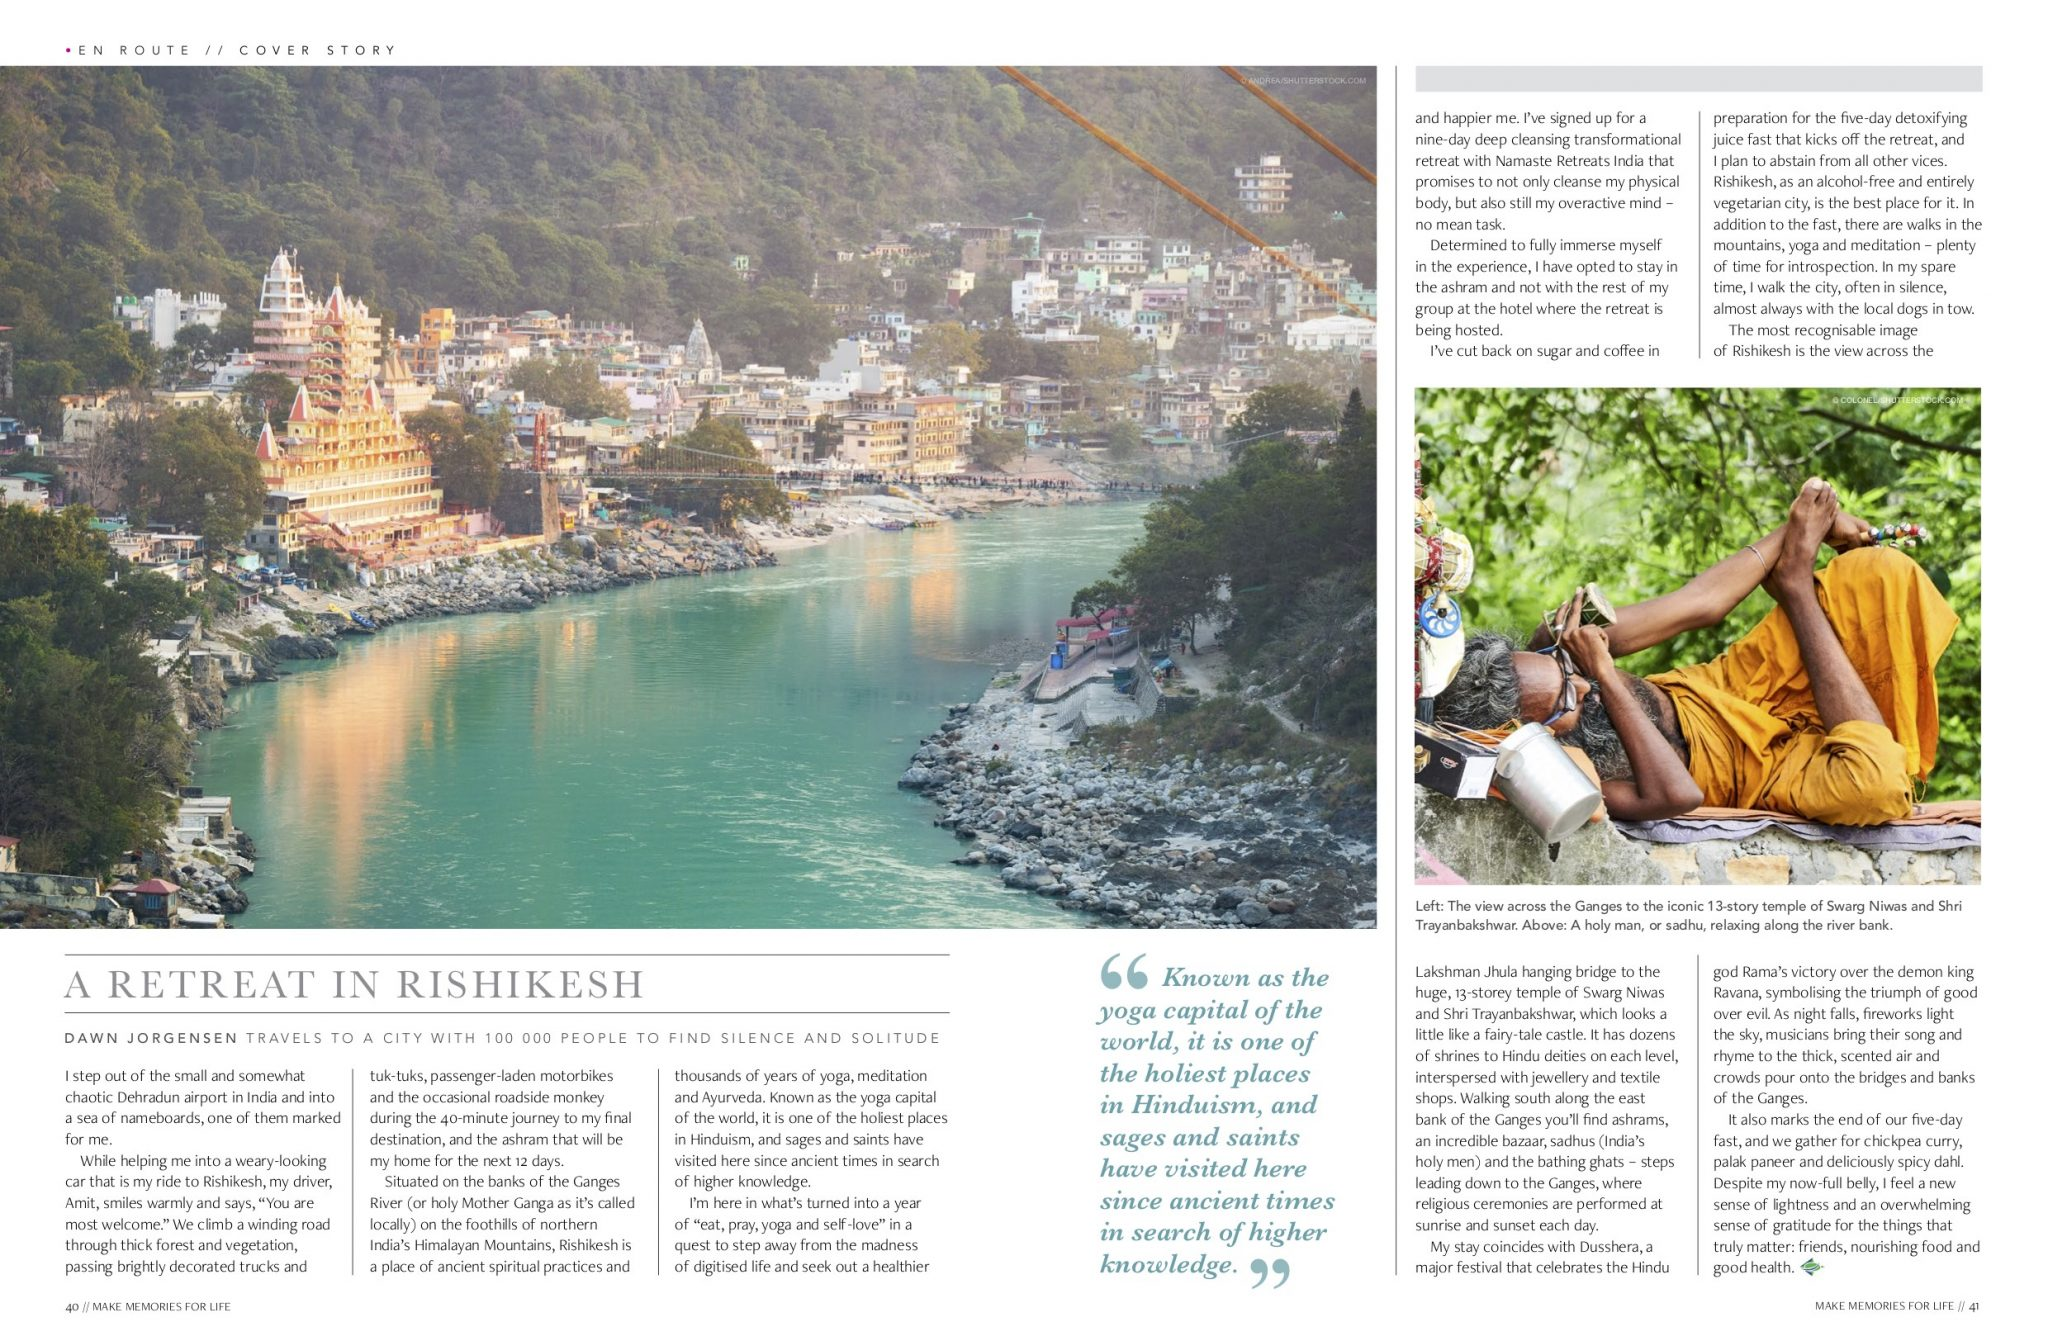 A retreat in Rishikesh, India  | The Incidental Tourist